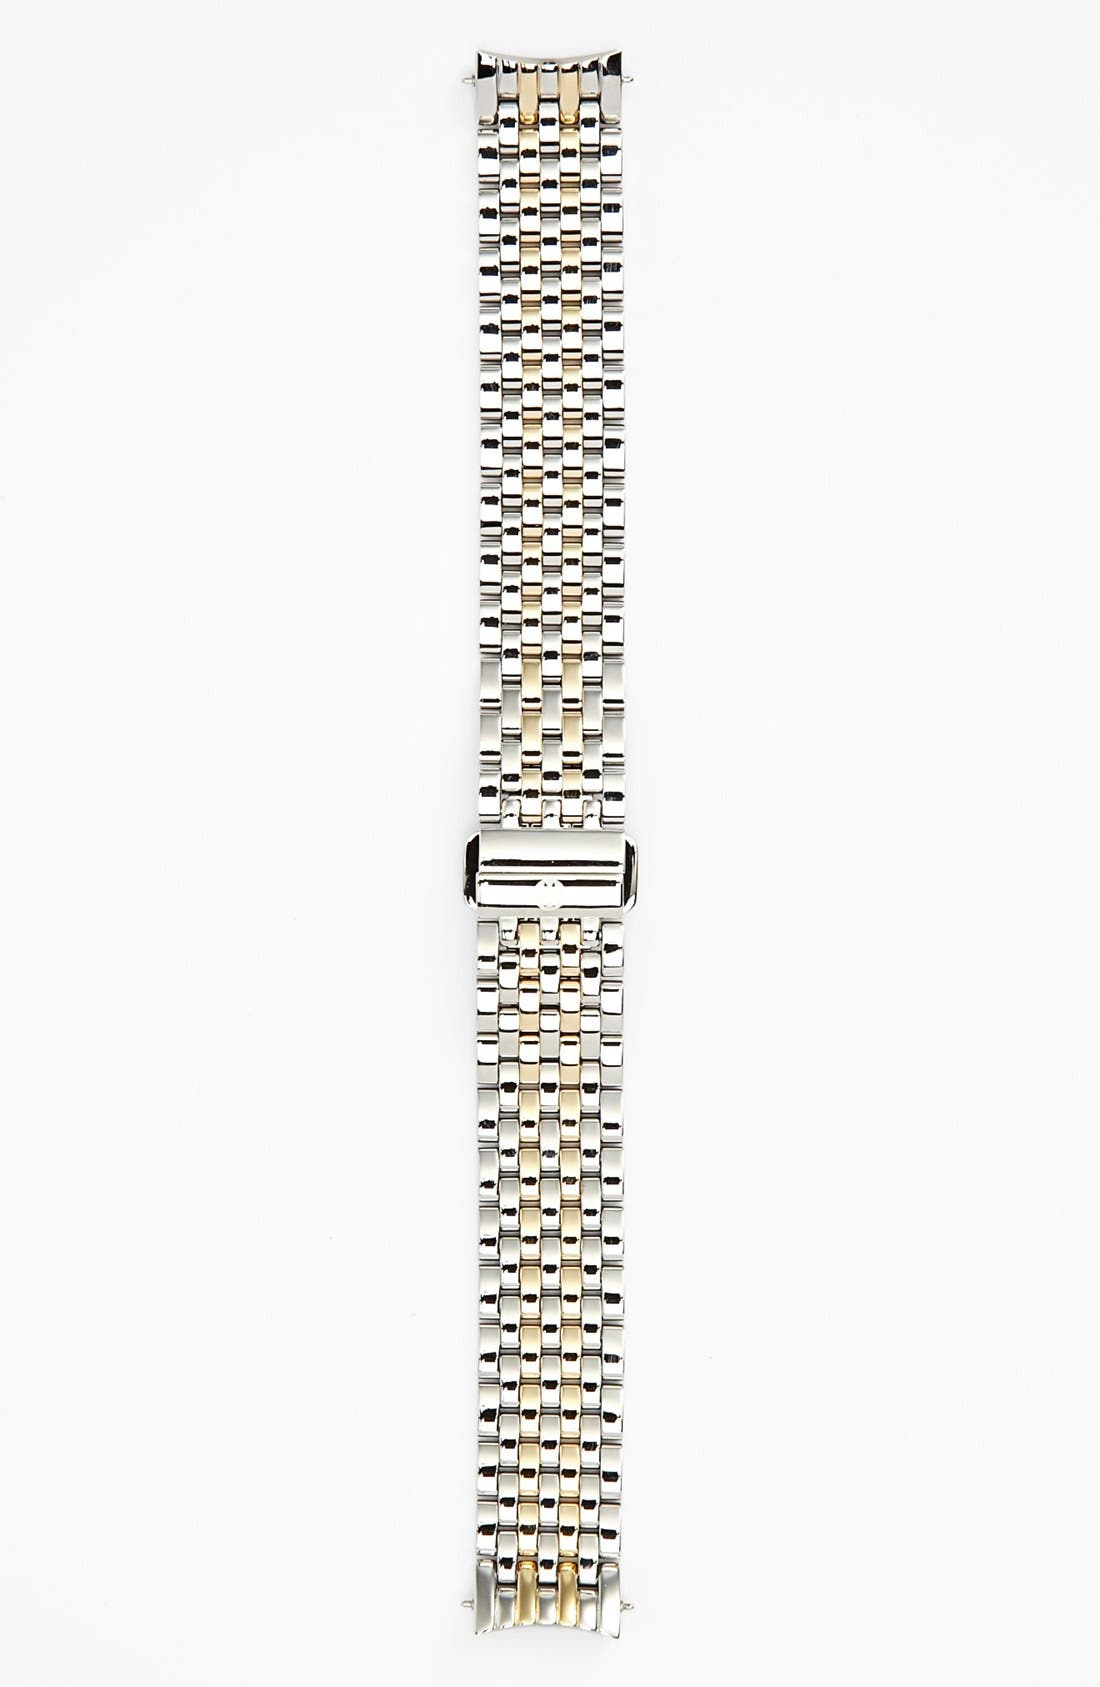 Serein 16 16mm Two-Tone Bracelet Watchband,                             Alternate thumbnail 4, color,                             Silver/ Gold